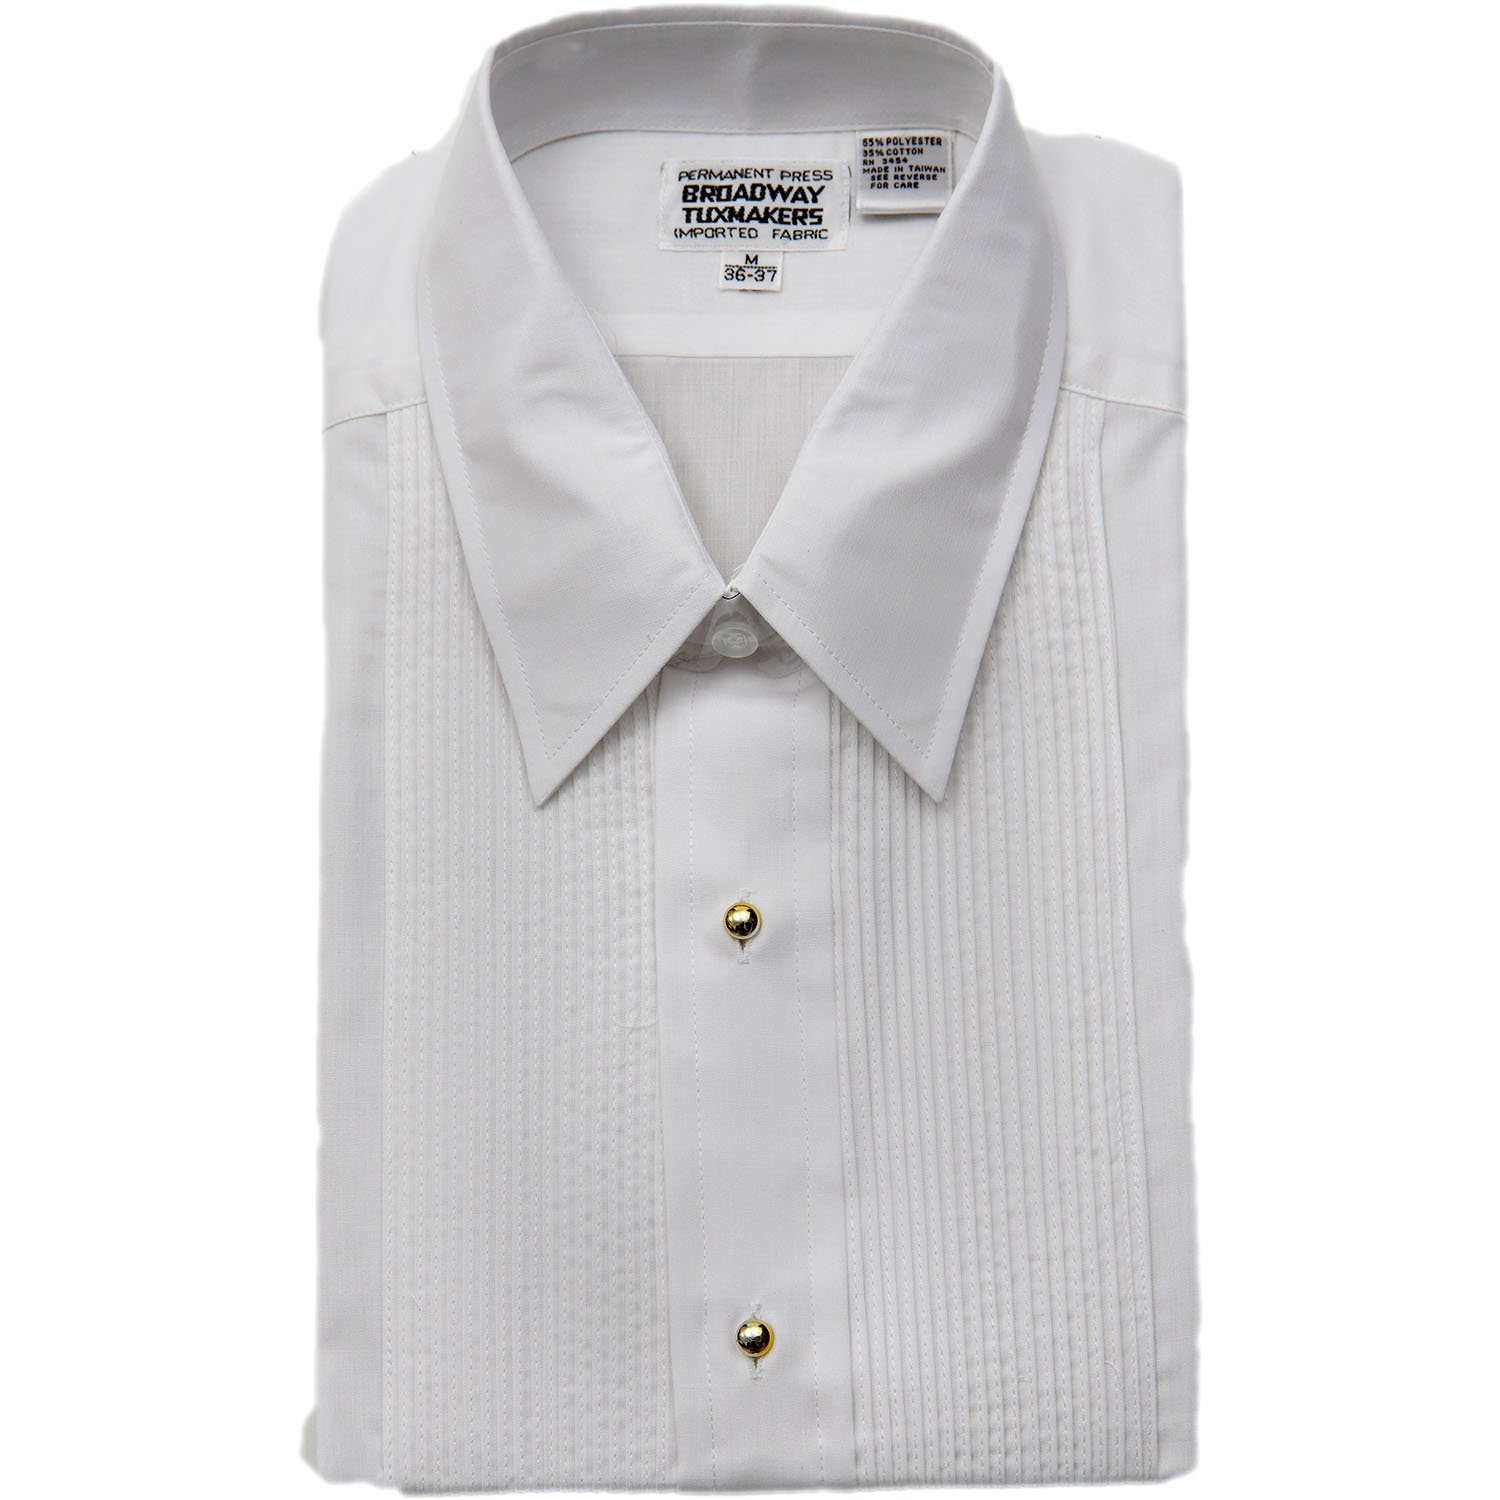 Broadway Tuxmakers Mens Laydown Collar White Tuxedo Shirt With Gold Studs by 501-laydown-gold